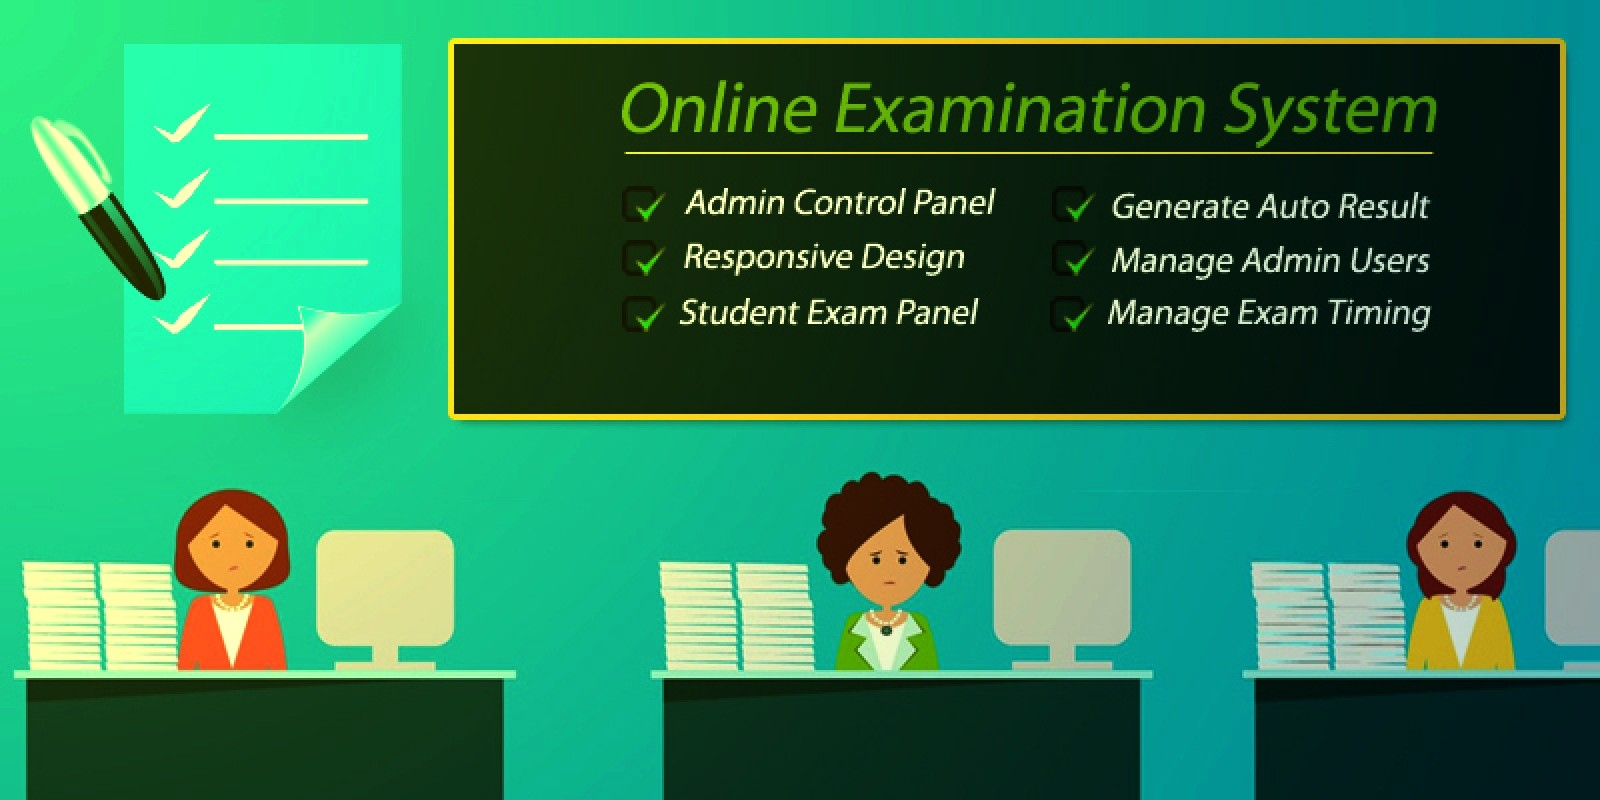 What is Online Examination System